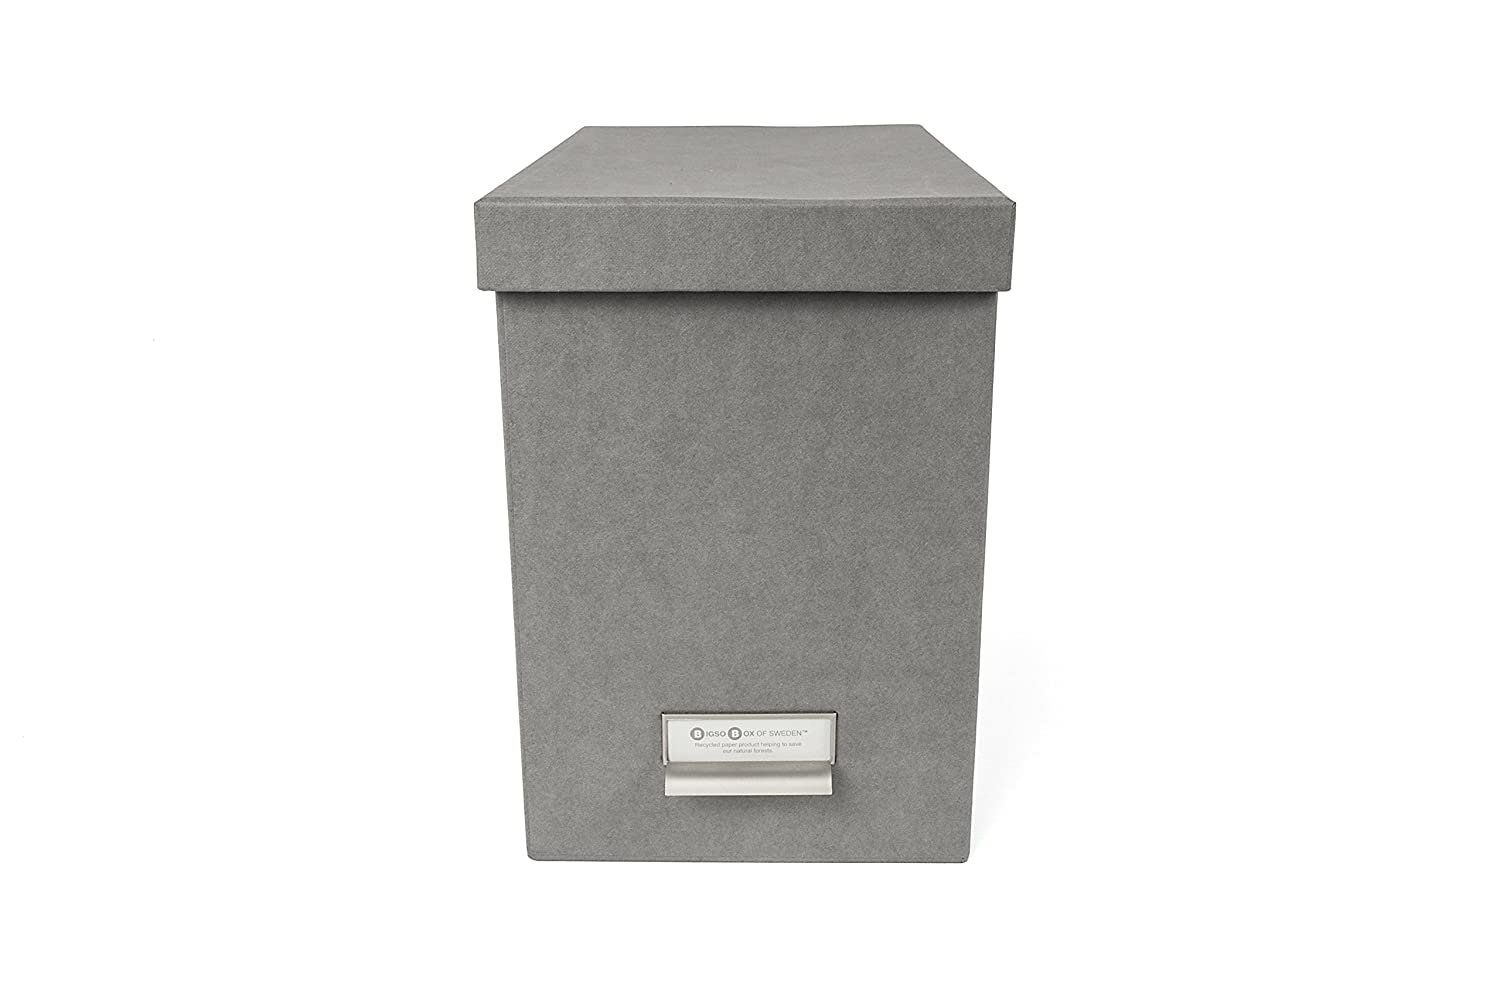 Bigso John Desktop File Box, Grey 954154144